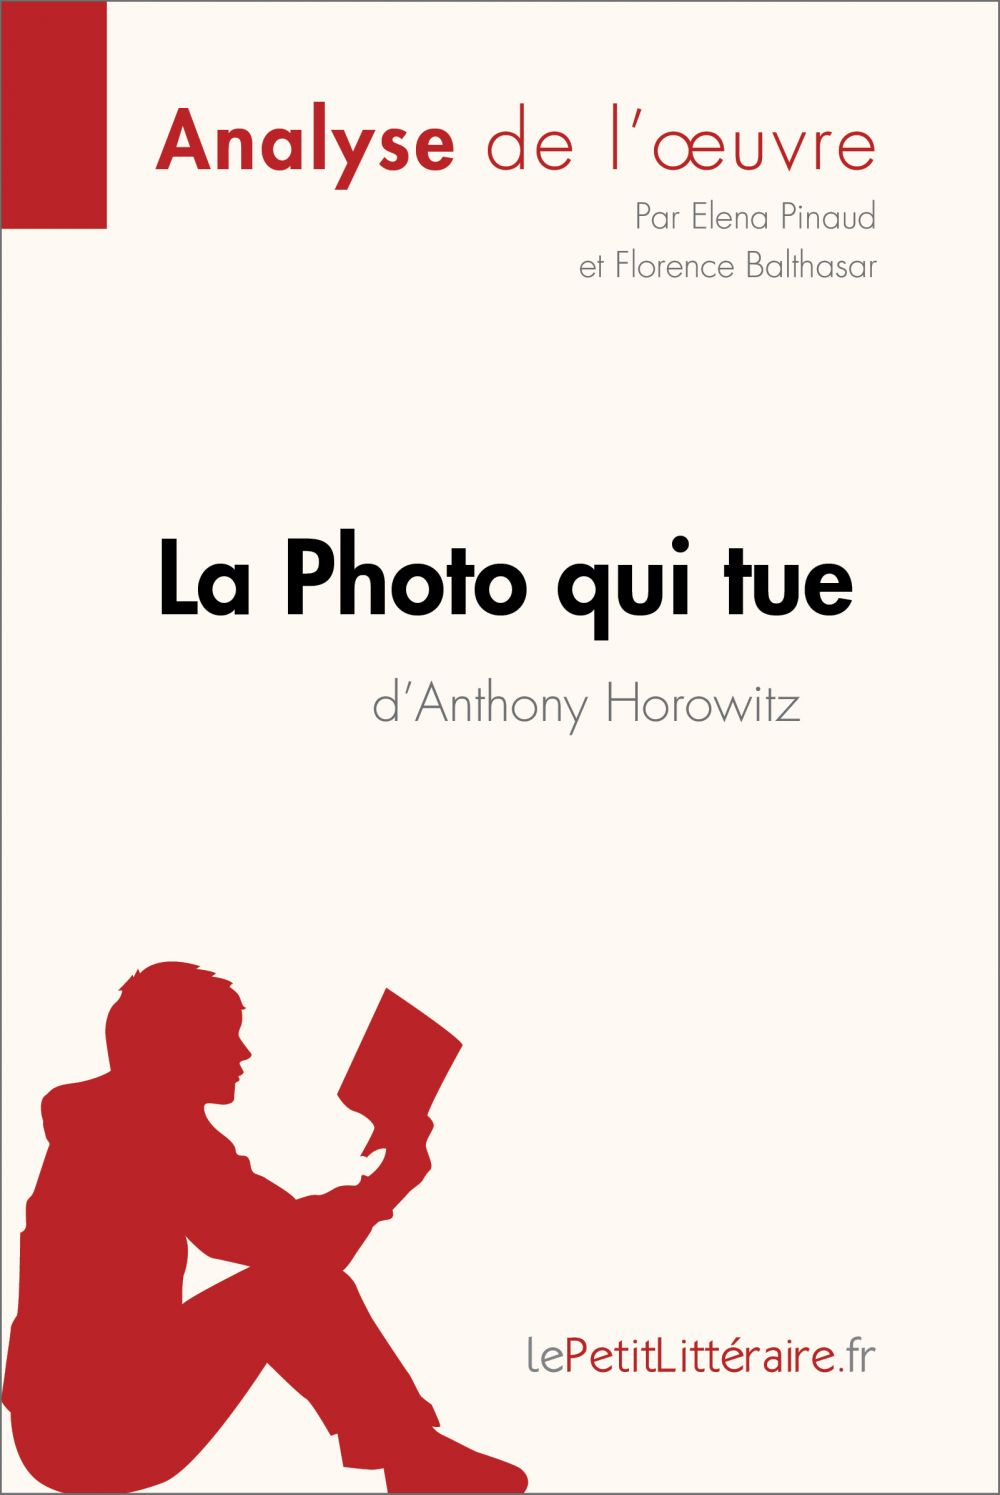 La Photo qui tue d'Anthony Horowitz (Analyse de l'oeuvre)